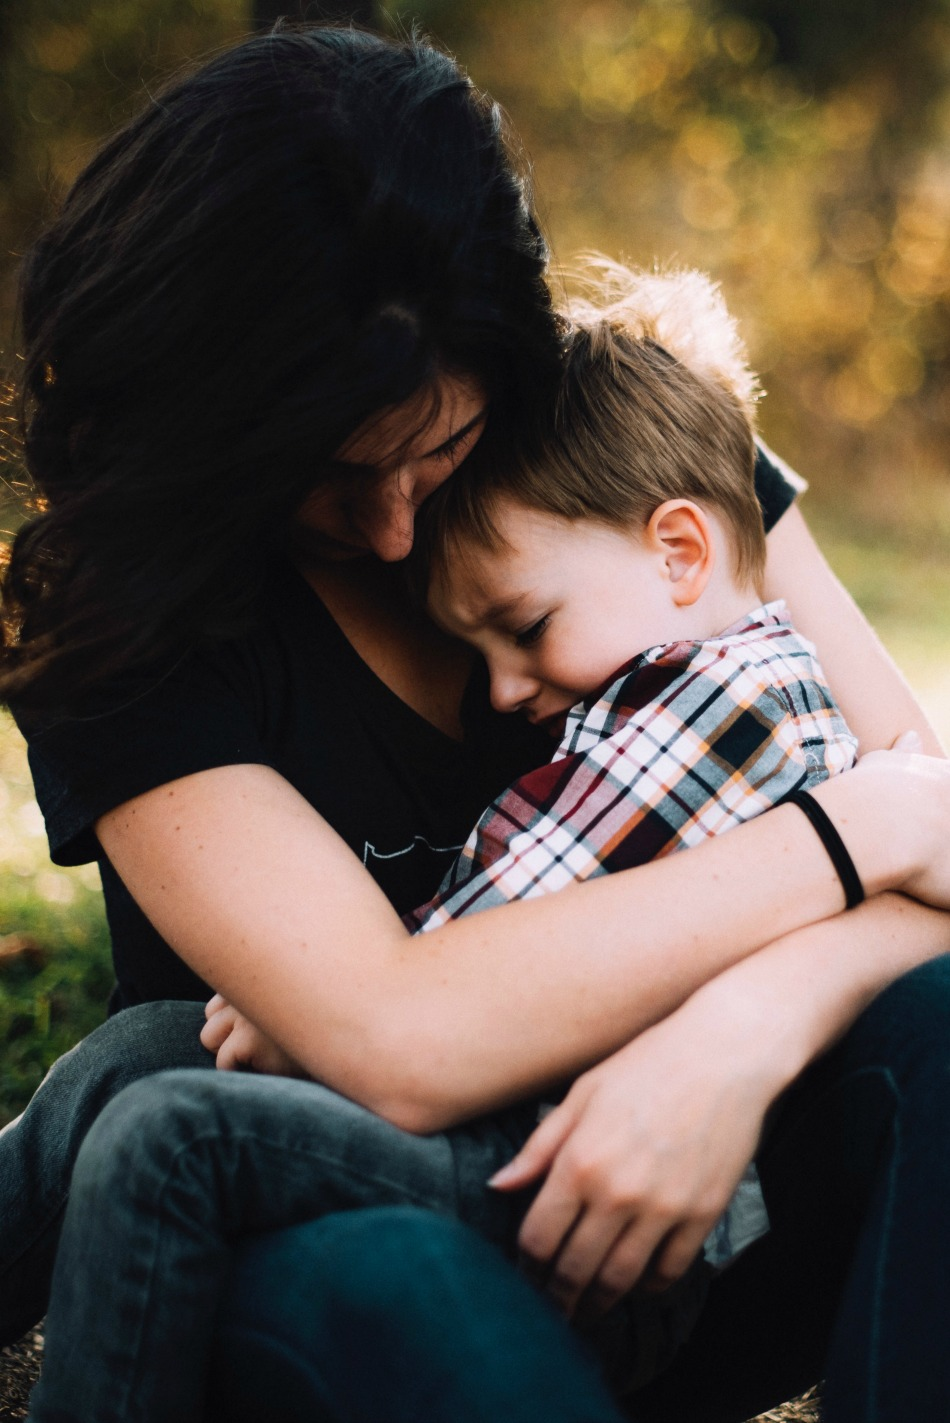 How To Approach Ear Infections Naturally   Growing Up Herbal   Curious how to approach ear infections naturally? Learn how herbs, essential oils, and other natural products can come to your aid and support the body.